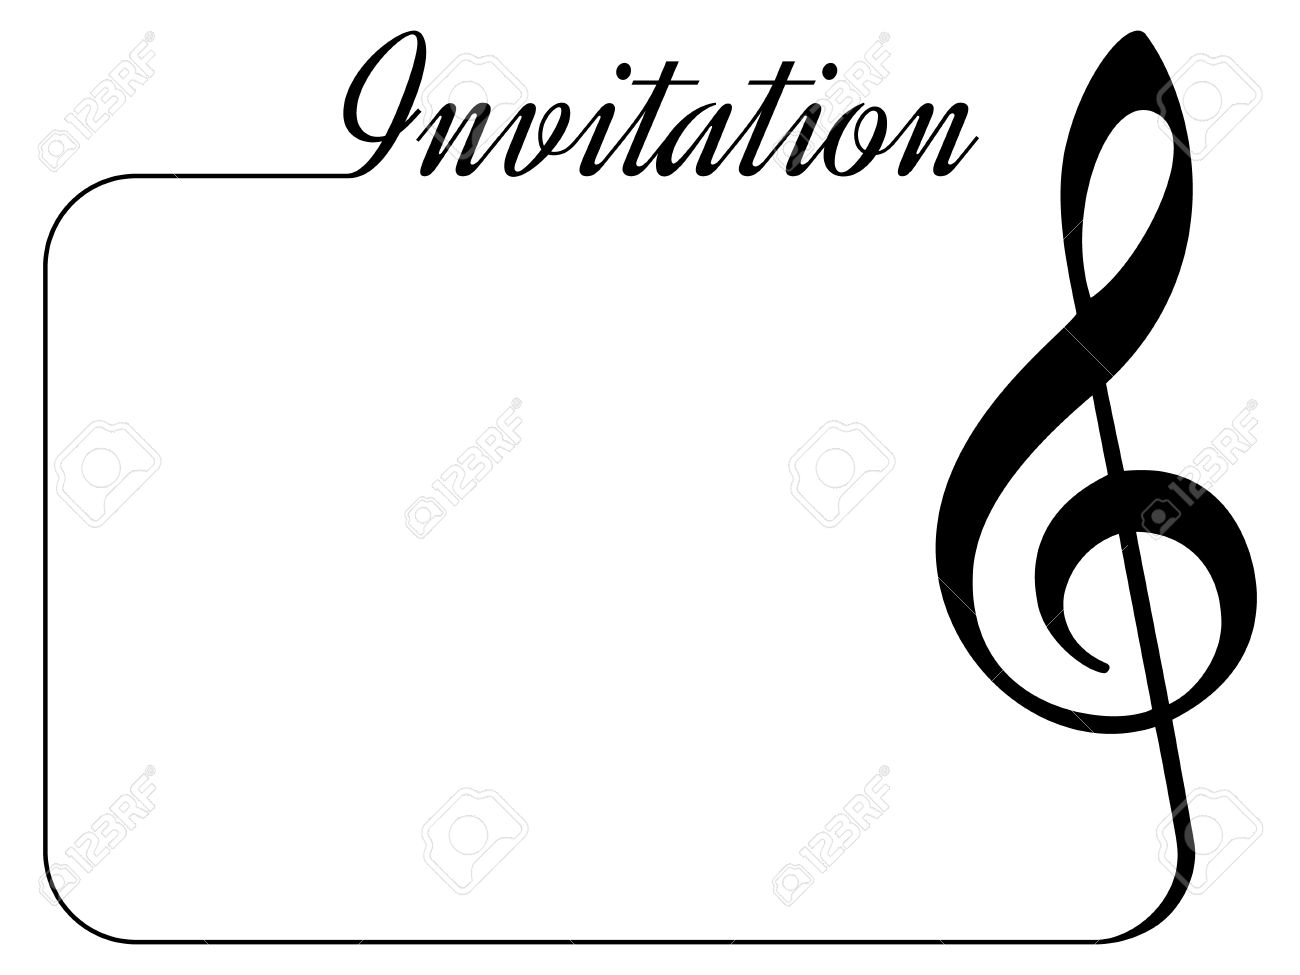 invitation card for music performance or concert isolated template with treble clef border and